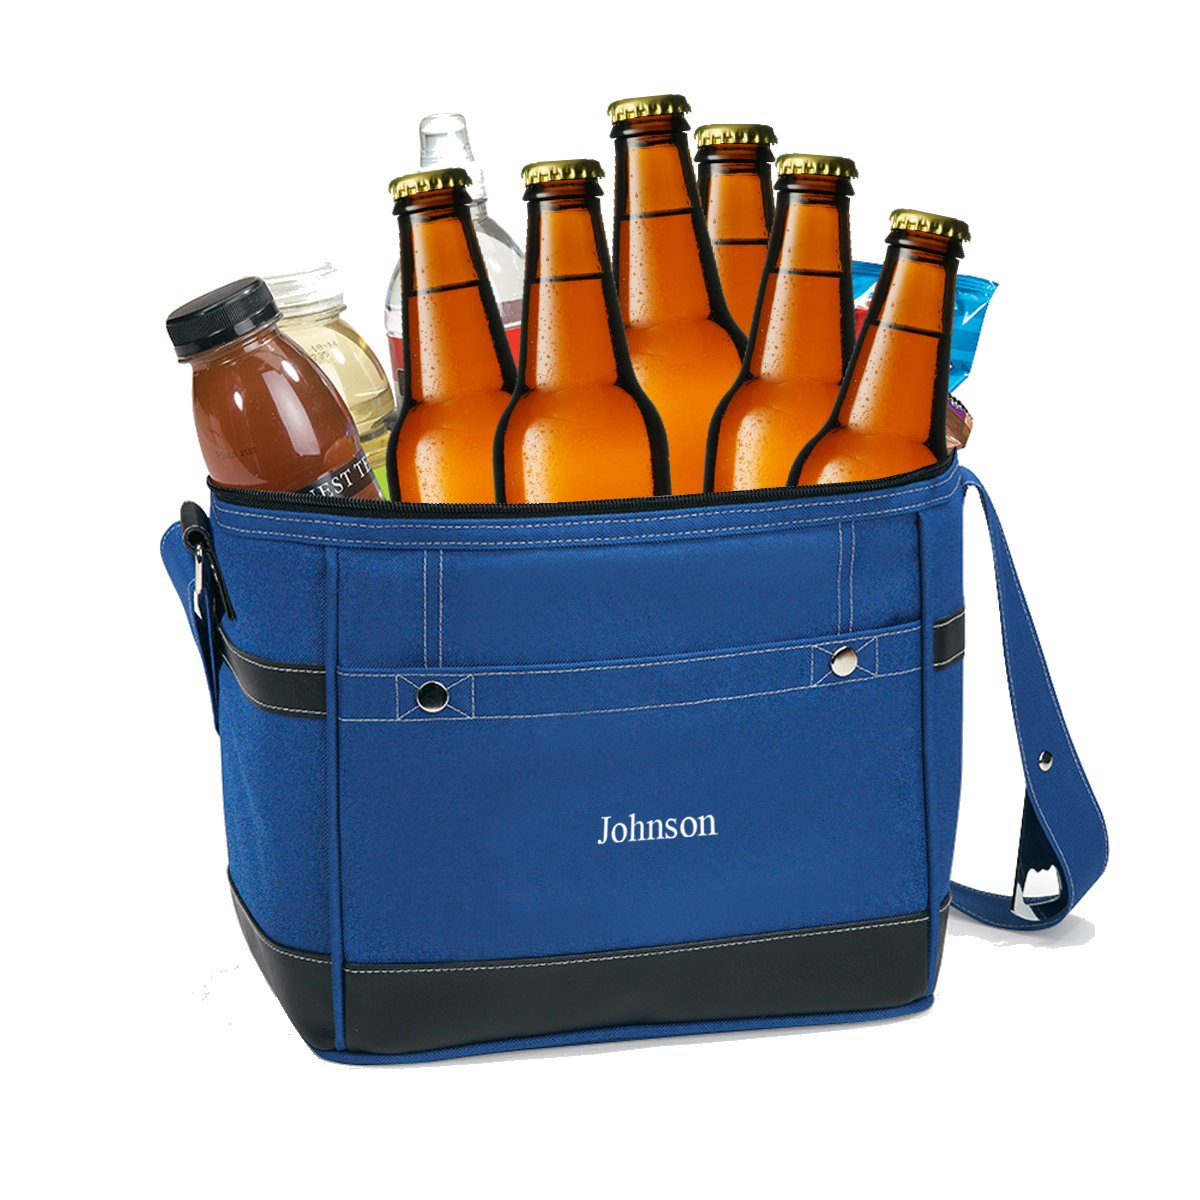 Personalized Blue Cooler Bag - 12-Pack Cooler Tote by A Gift Personalized